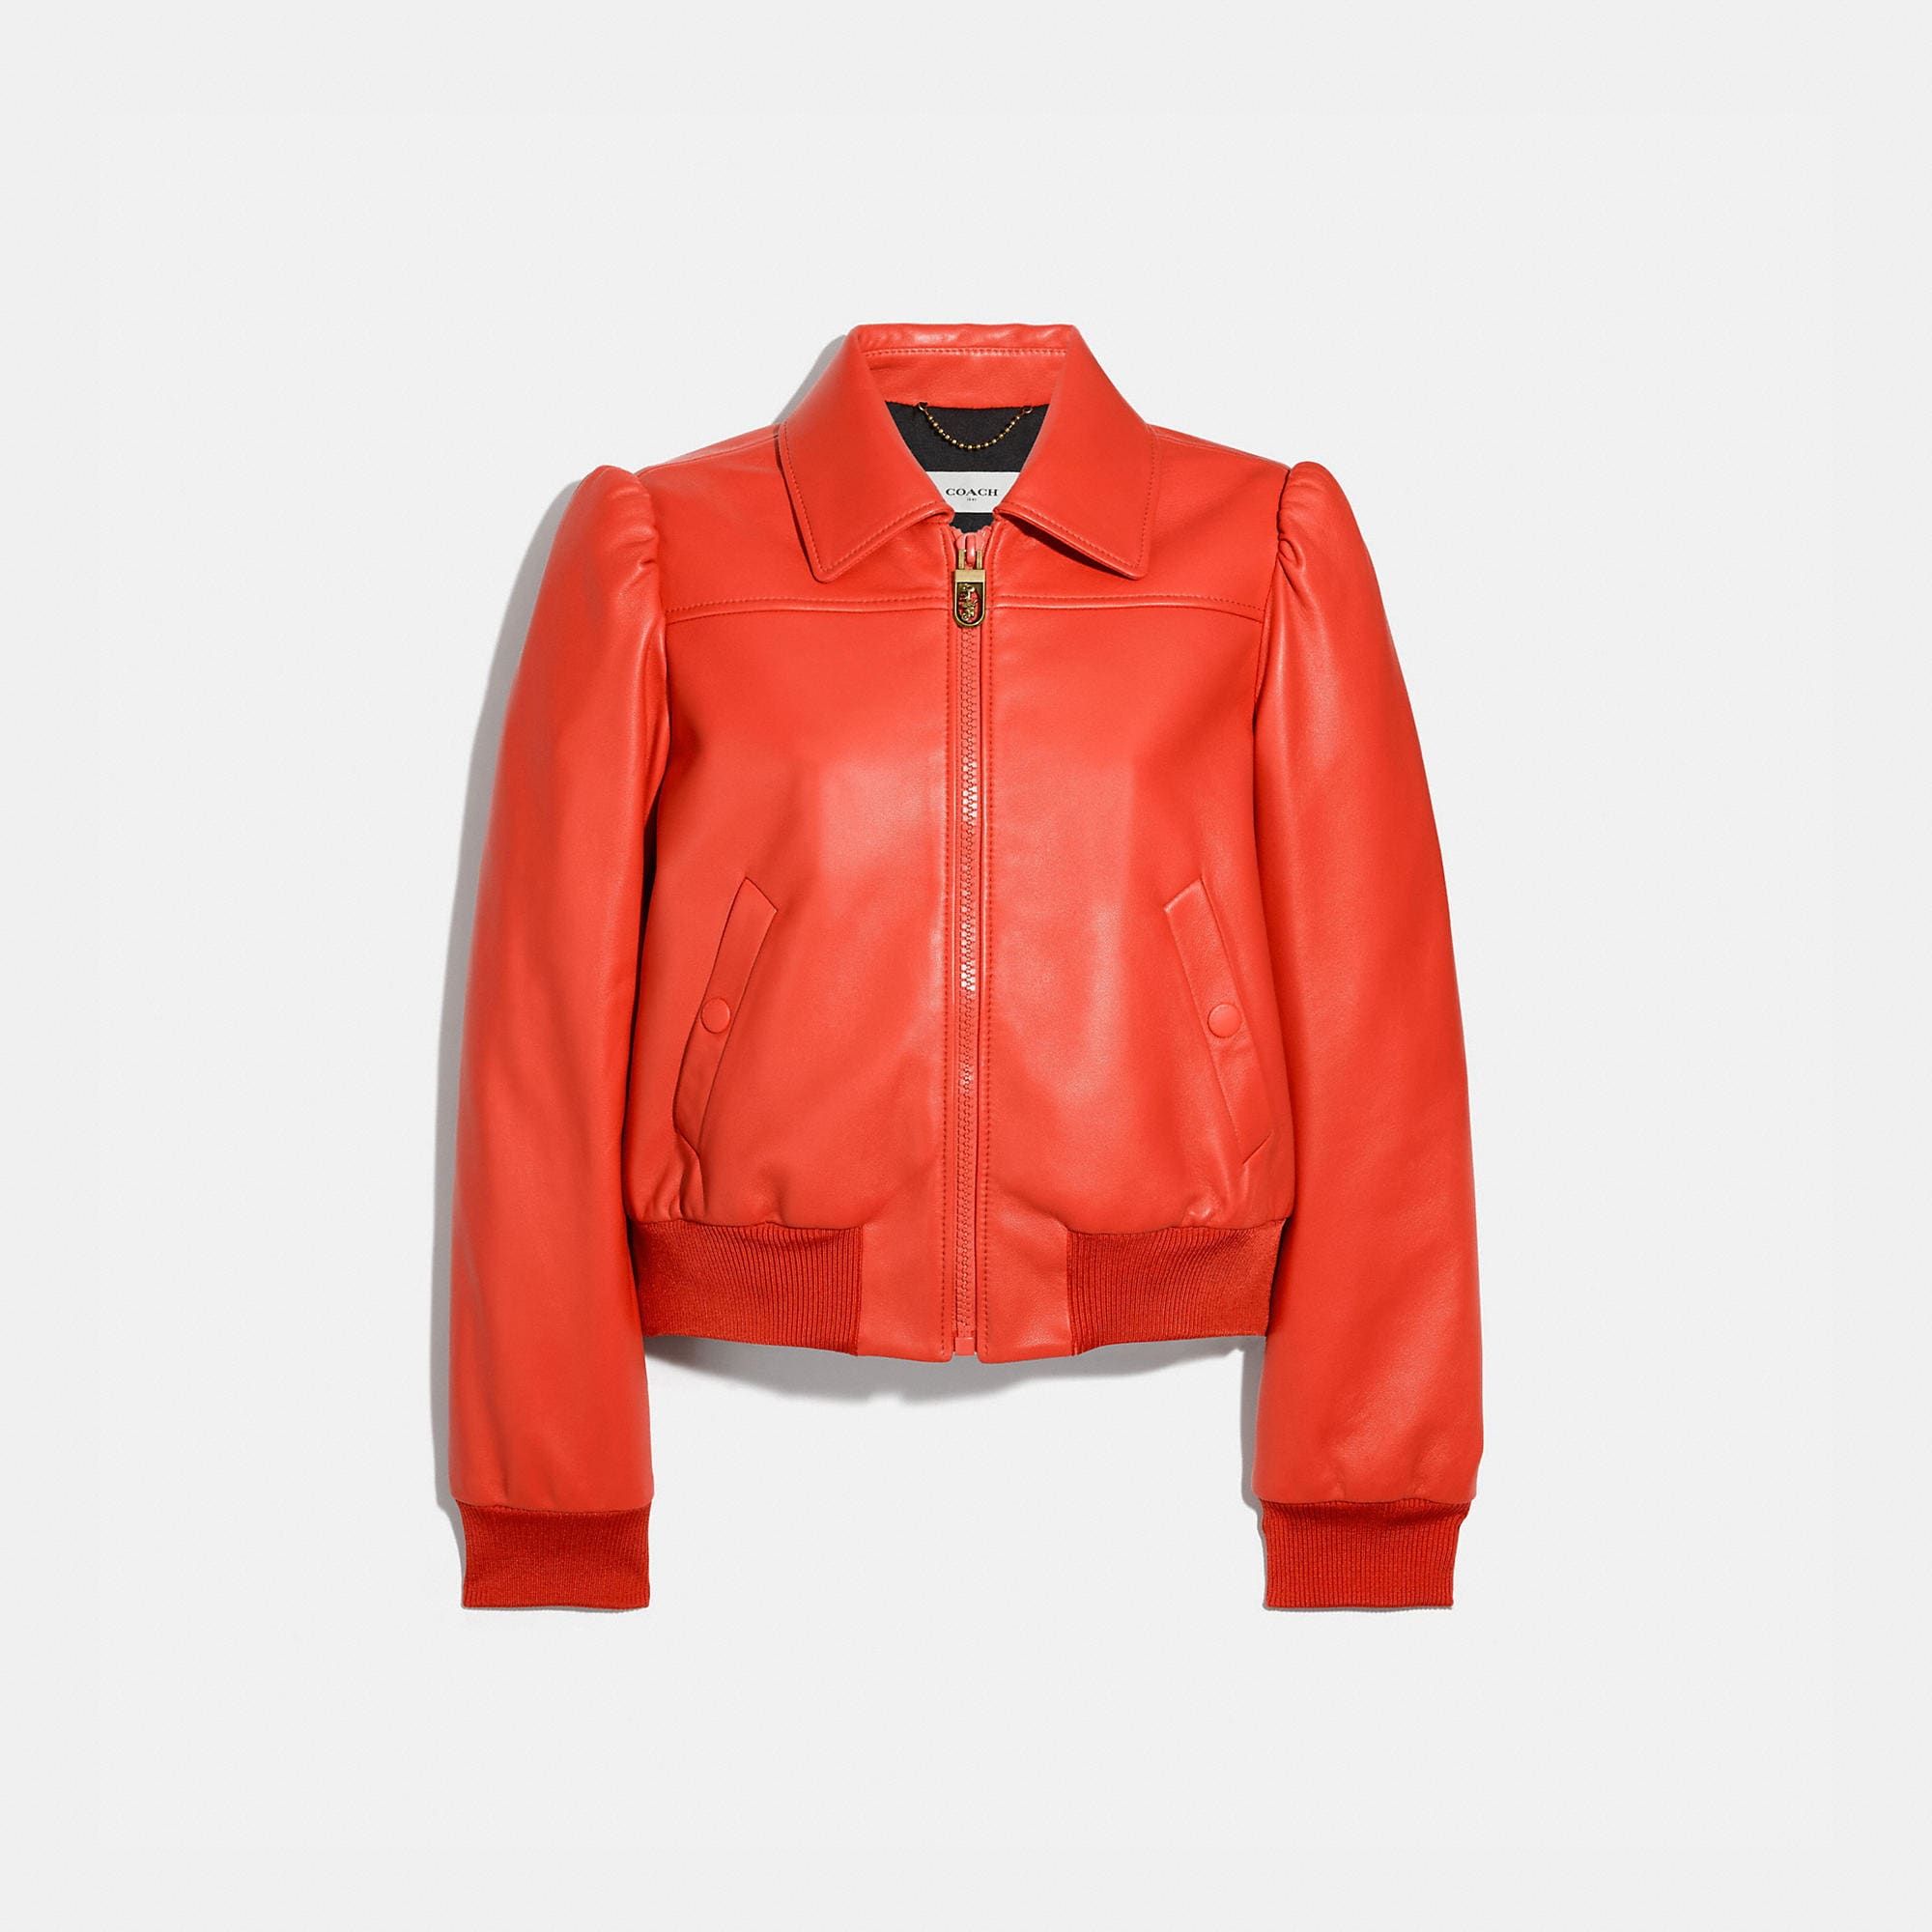 Coach COACH LEATHER BLOUSON JACKET - WOMEN'S